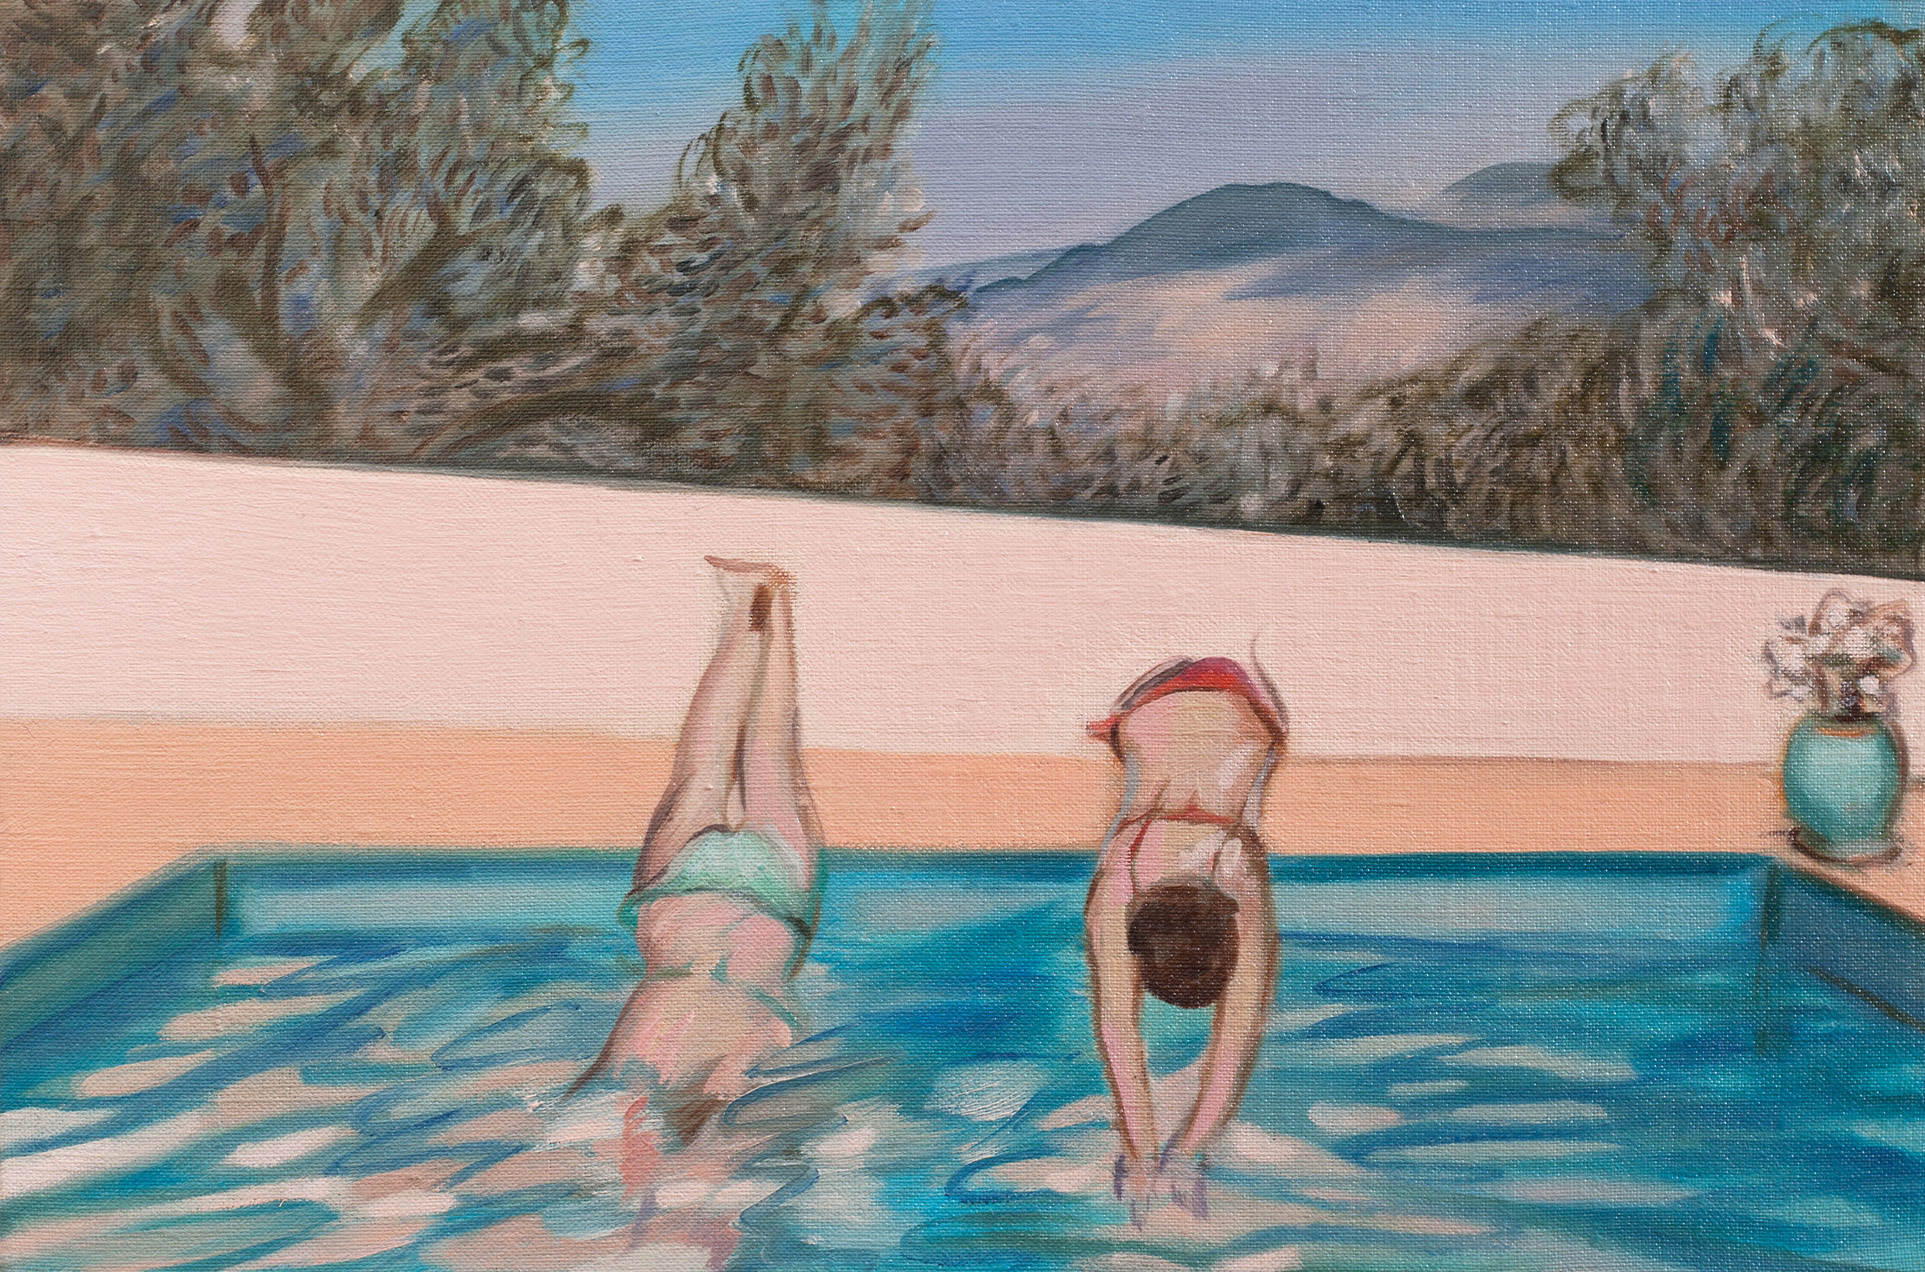 Peach Dive , Oil on linen board, 20 x 30 cm, 2016. Photograph courtesy of Taryn Ellis